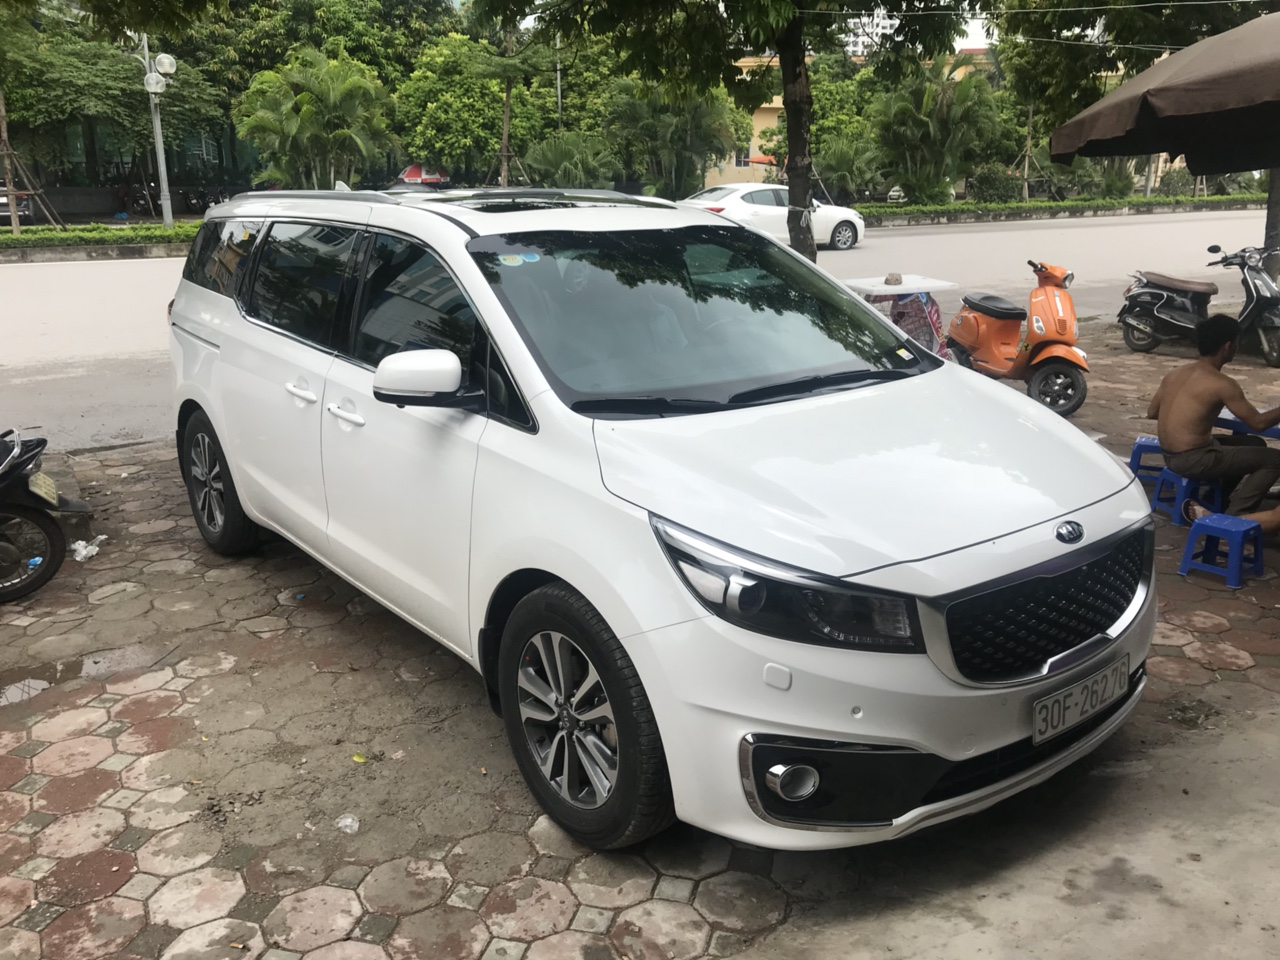 camera-360-do-oris-cho-kia-sedona-2018kia-sedona-2018